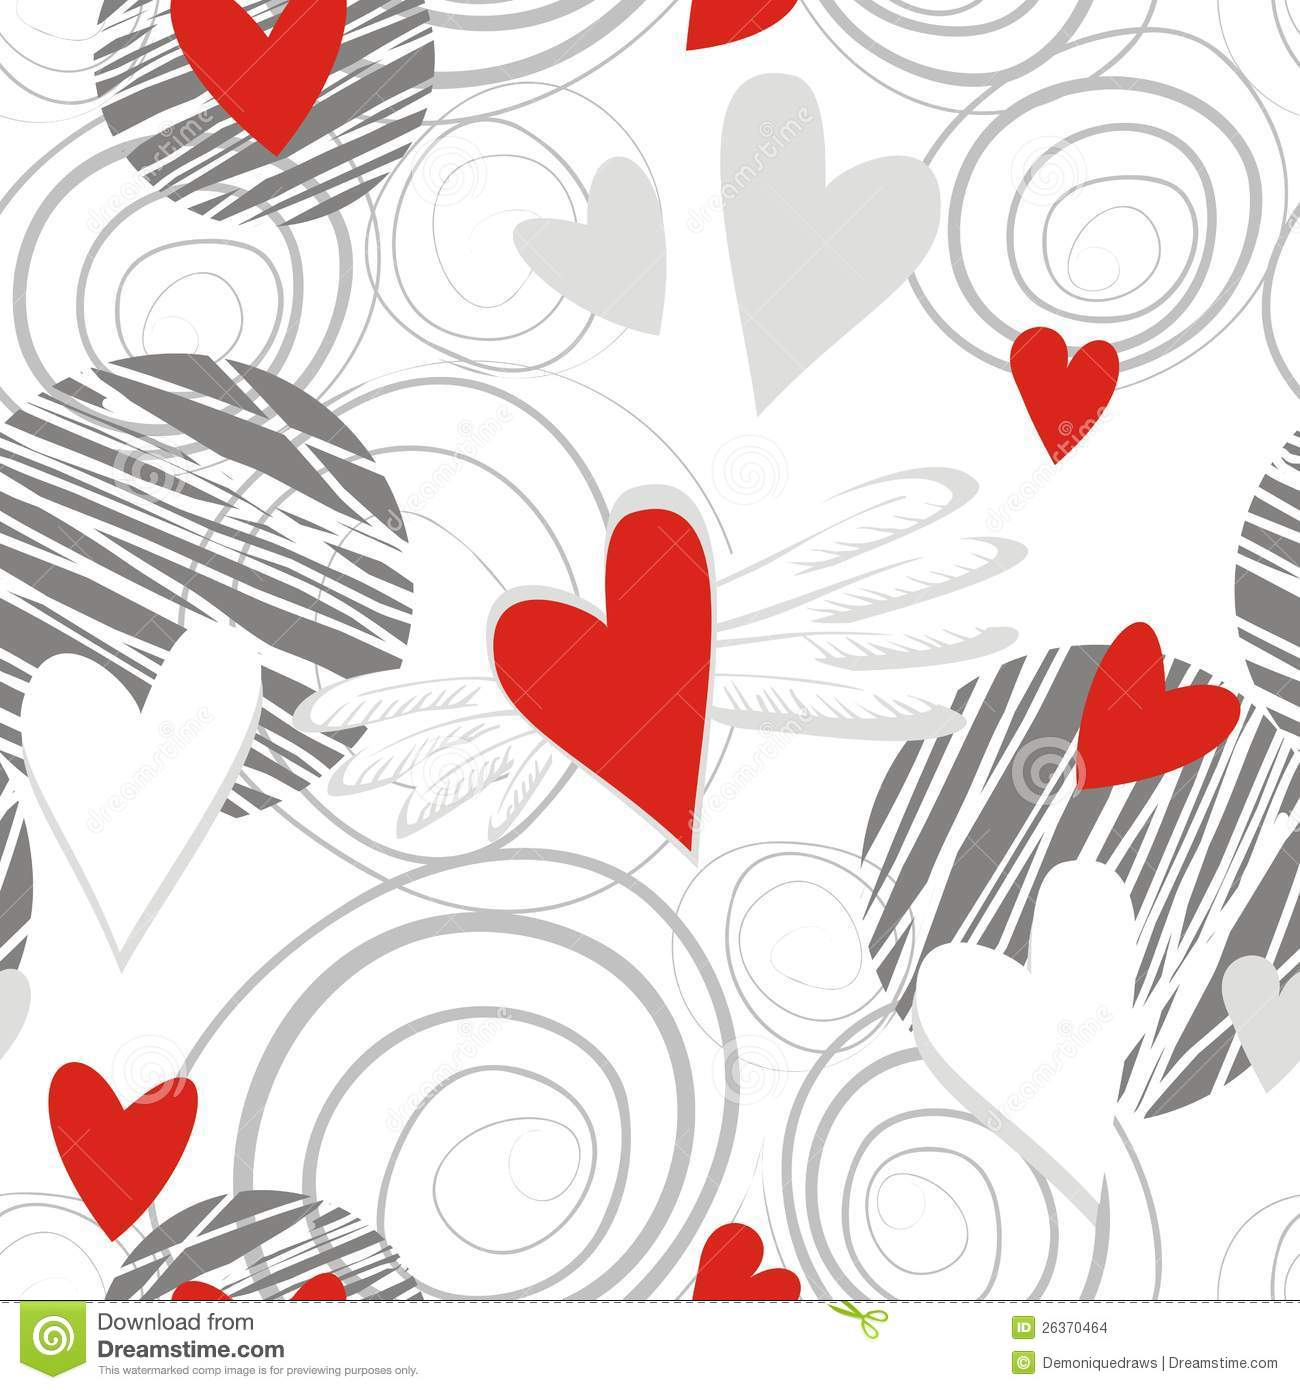 flying hearts dating service Read now detailed review about victoriaheartscom (victoria hearts) dating site that show all pros and cons for love seekers from usa.